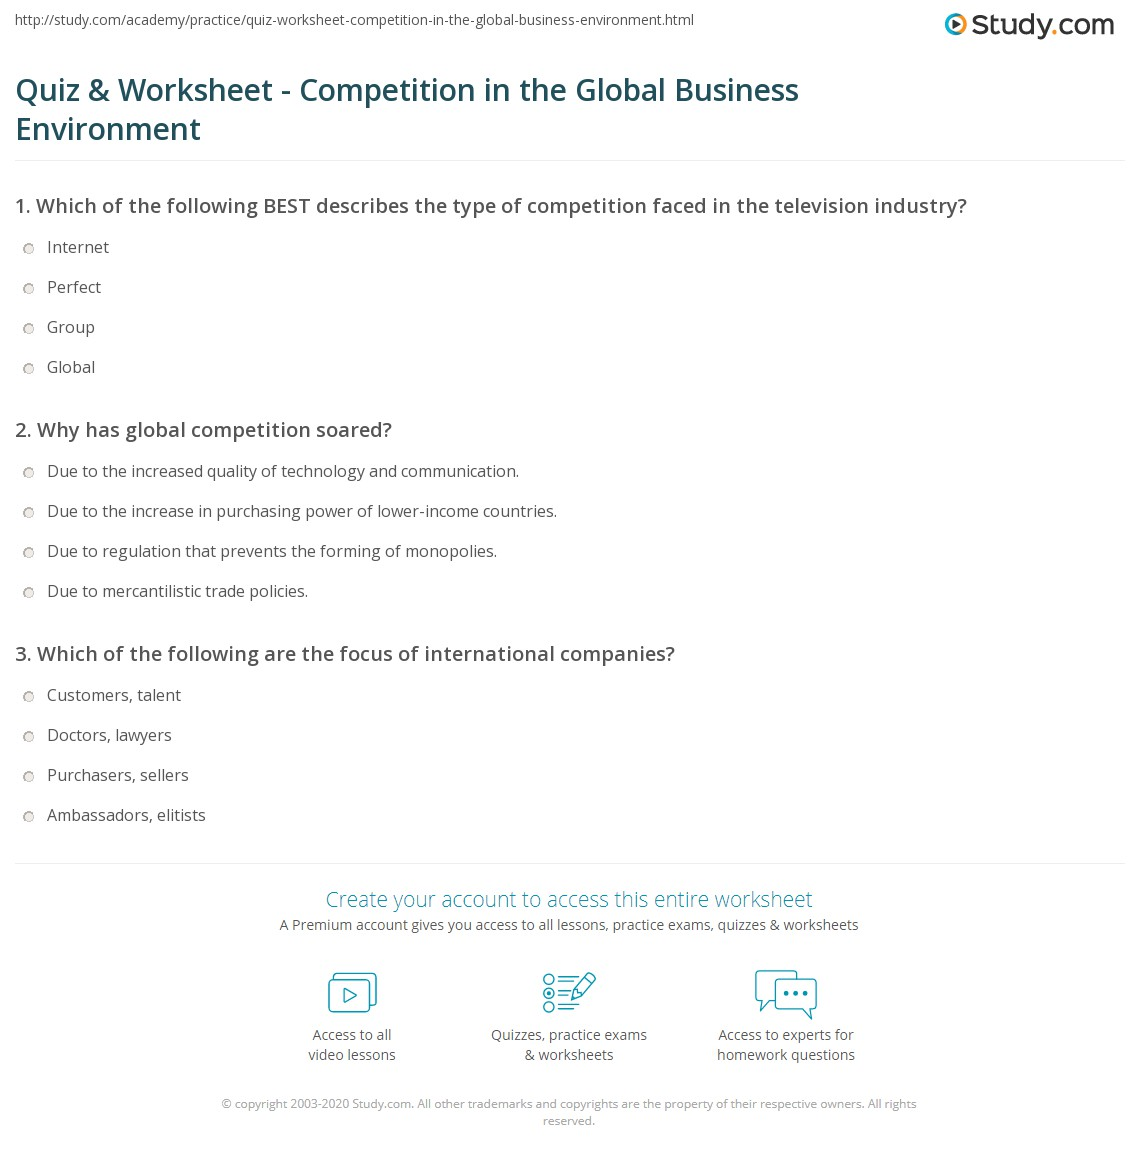 quiz worksheet competition in the global business environment. Black Bedroom Furniture Sets. Home Design Ideas